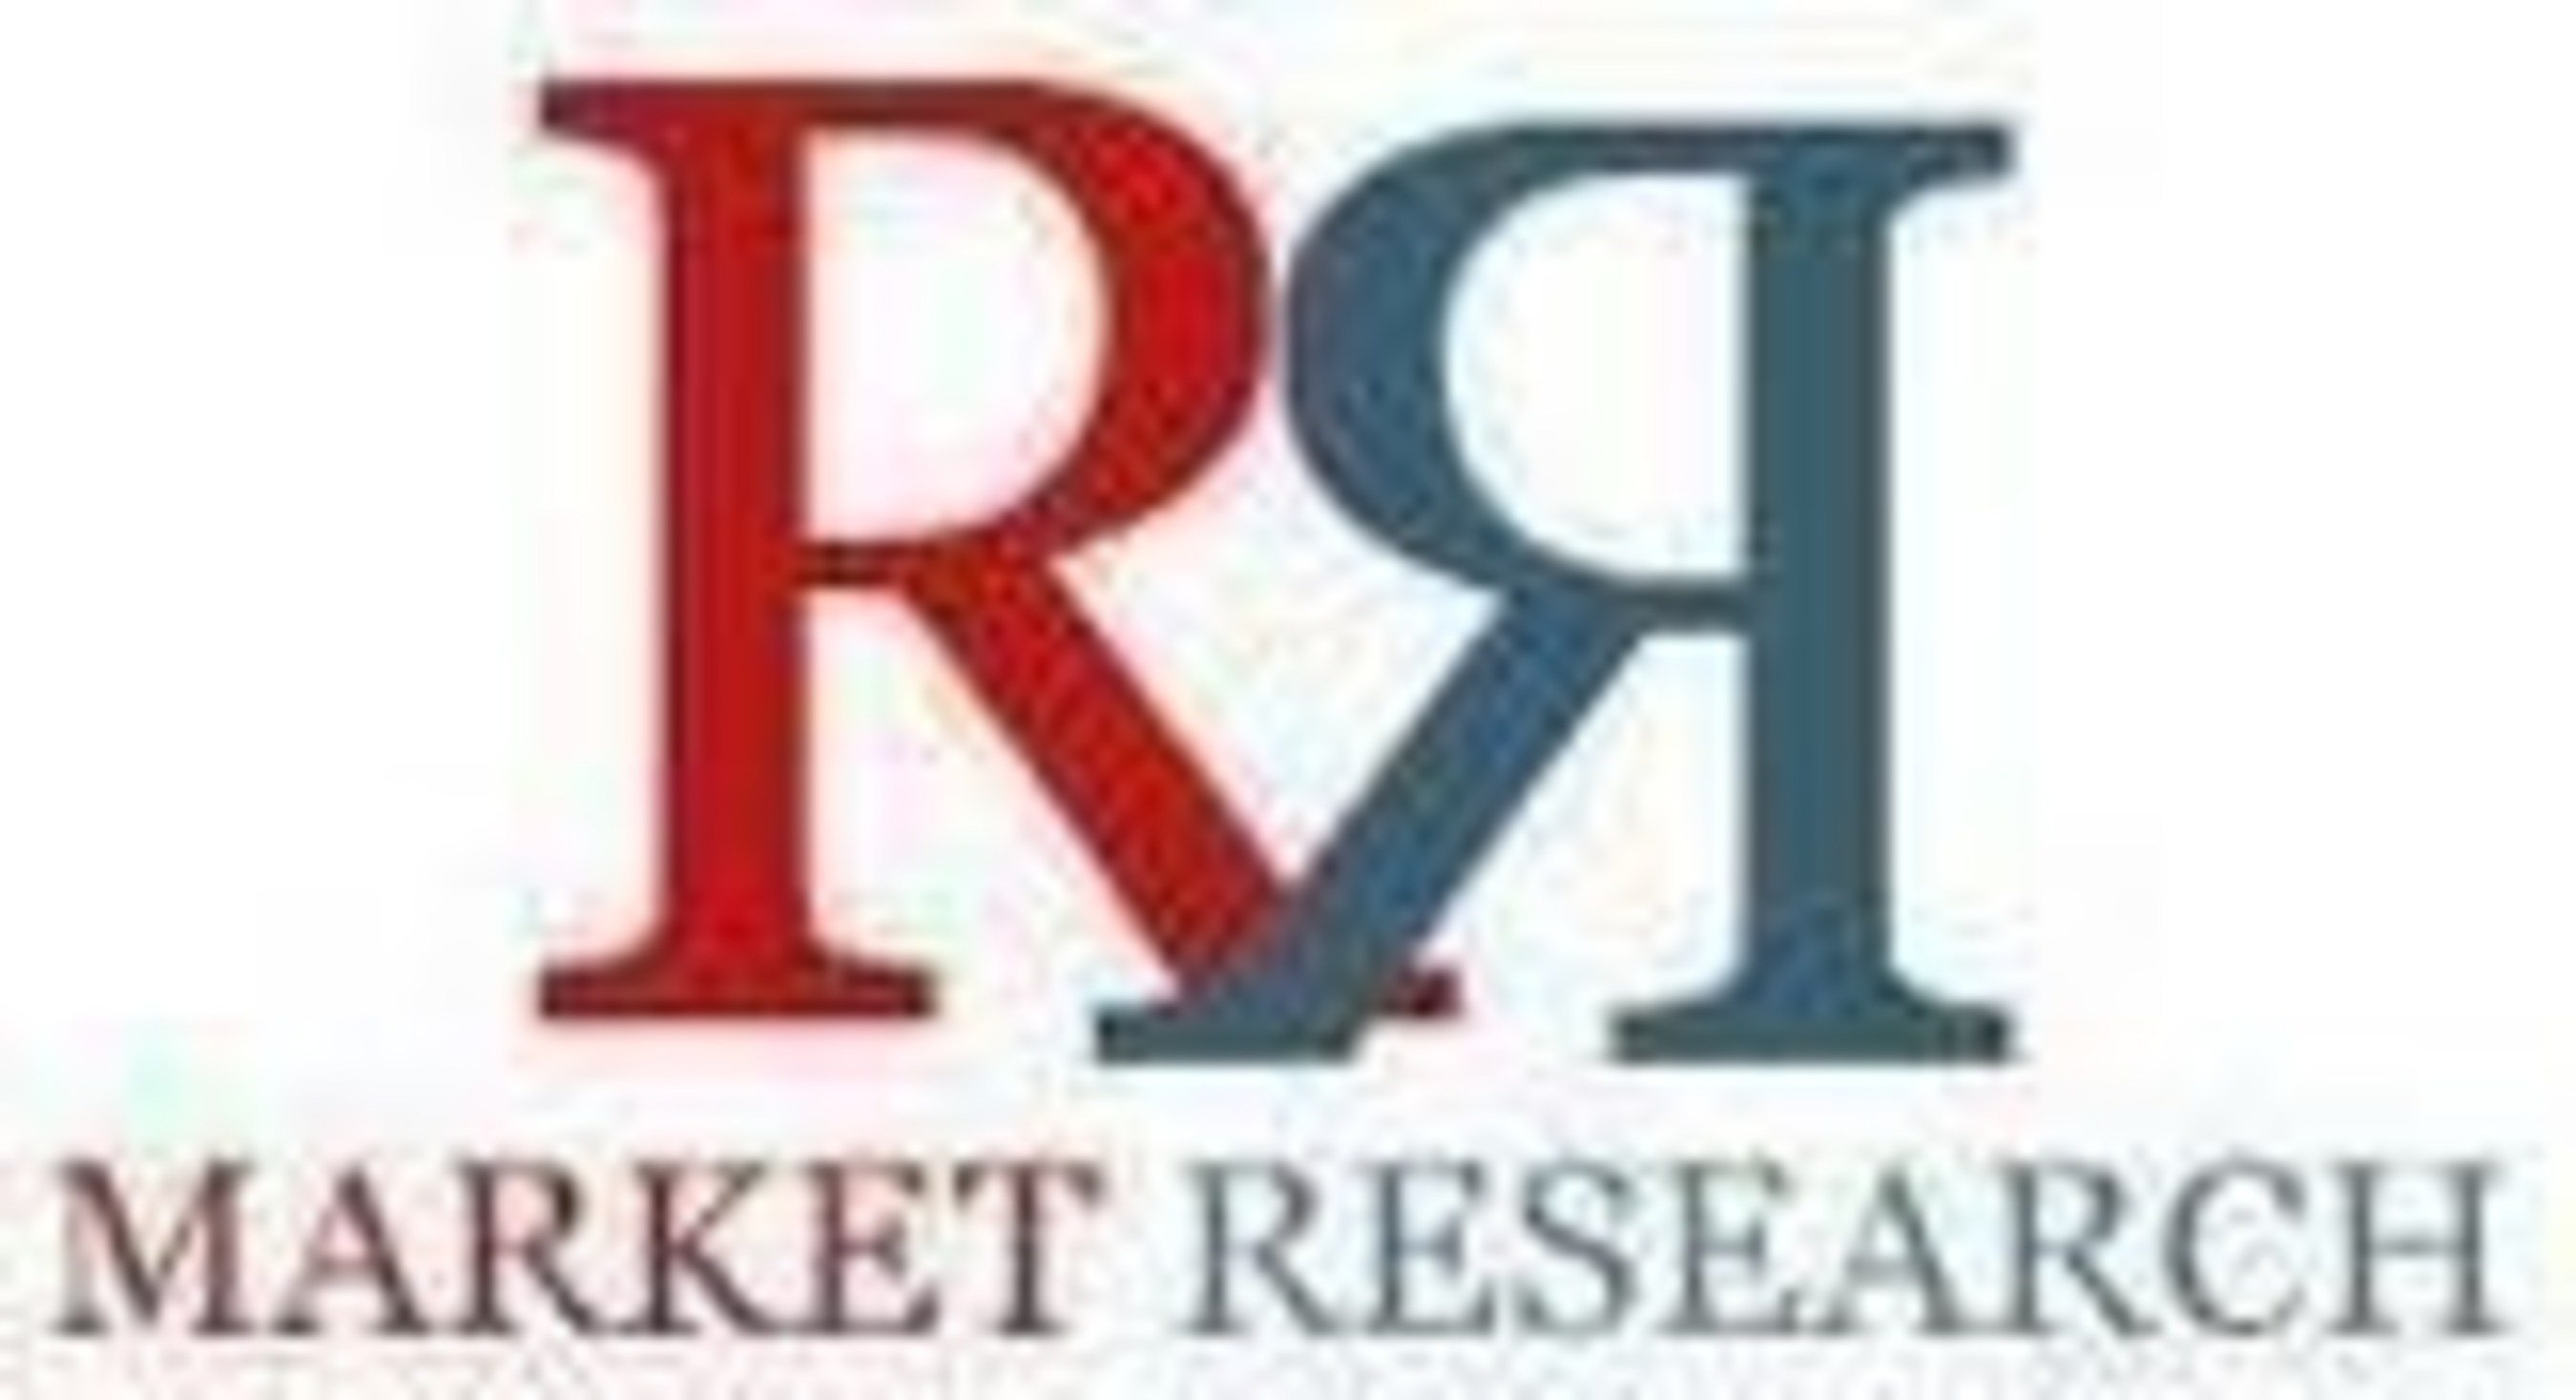 Collaborative Robots Market Rising at 60.04% CAGR to Hit $3.3 Billion by 2022 Led by Automotive Industry